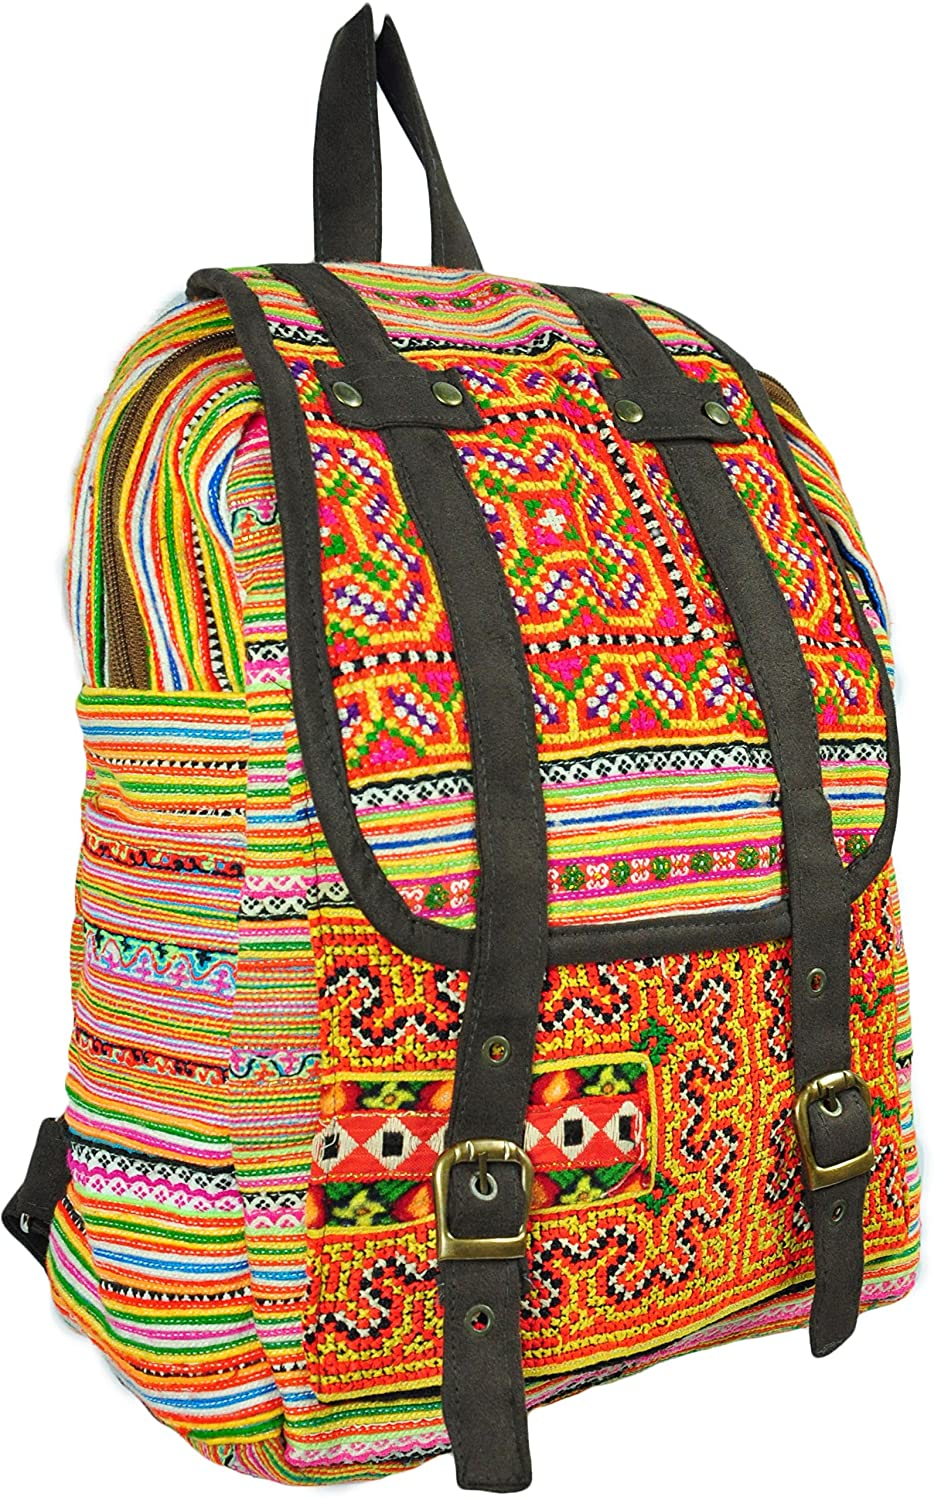 Hmong Handmade Woven Lace Backpack Satchel Knapsack with Adjustable Shoulder Straps Embroidery Asian Thai Style Hippie Cotton Fabric Lanna Pattern Bag From Chiangmai Thailand